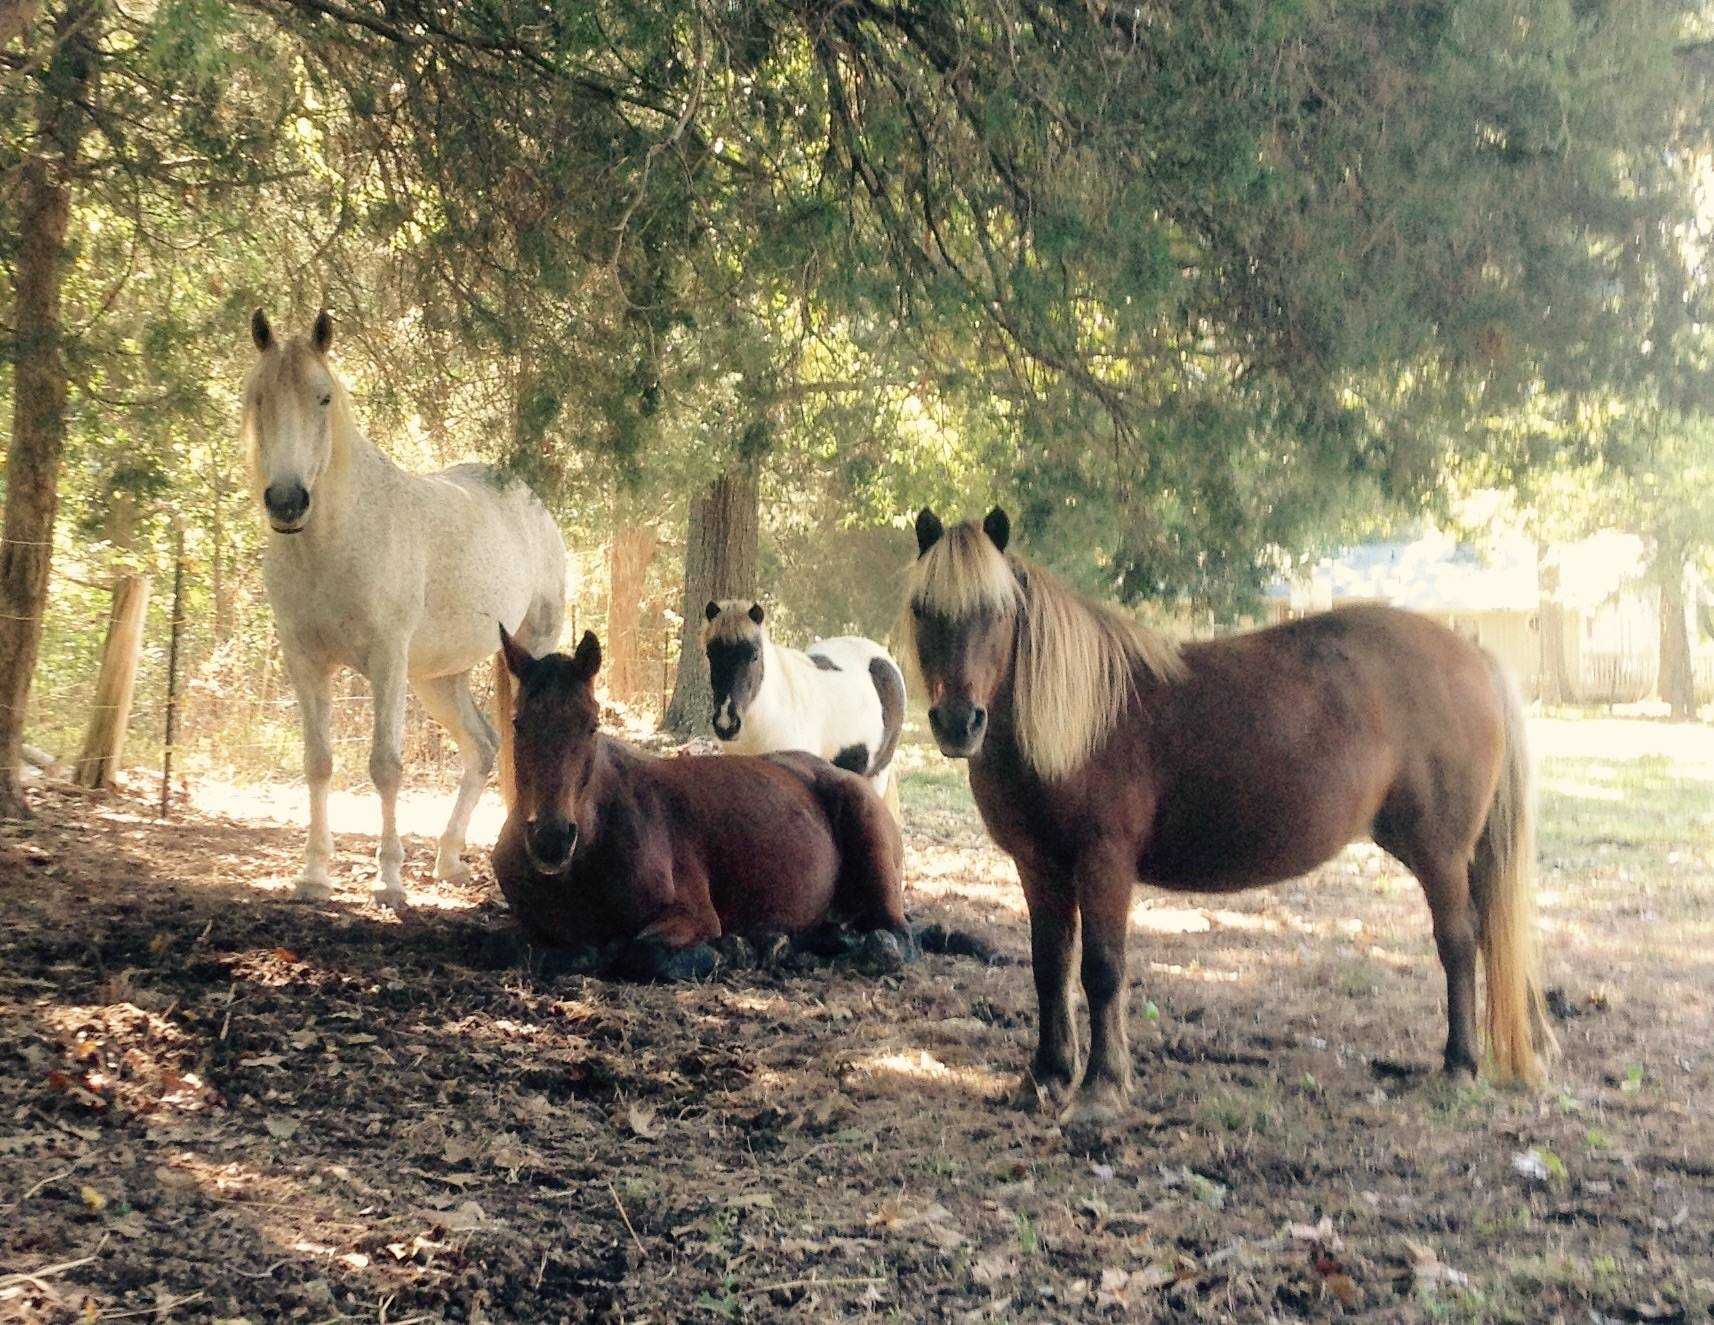 #notmyhorse None of my horses will die in a slaughter house or experience neglect during their lives. Eventually, each of them will take their final resting place here, beneath a shady tree in our pasture.